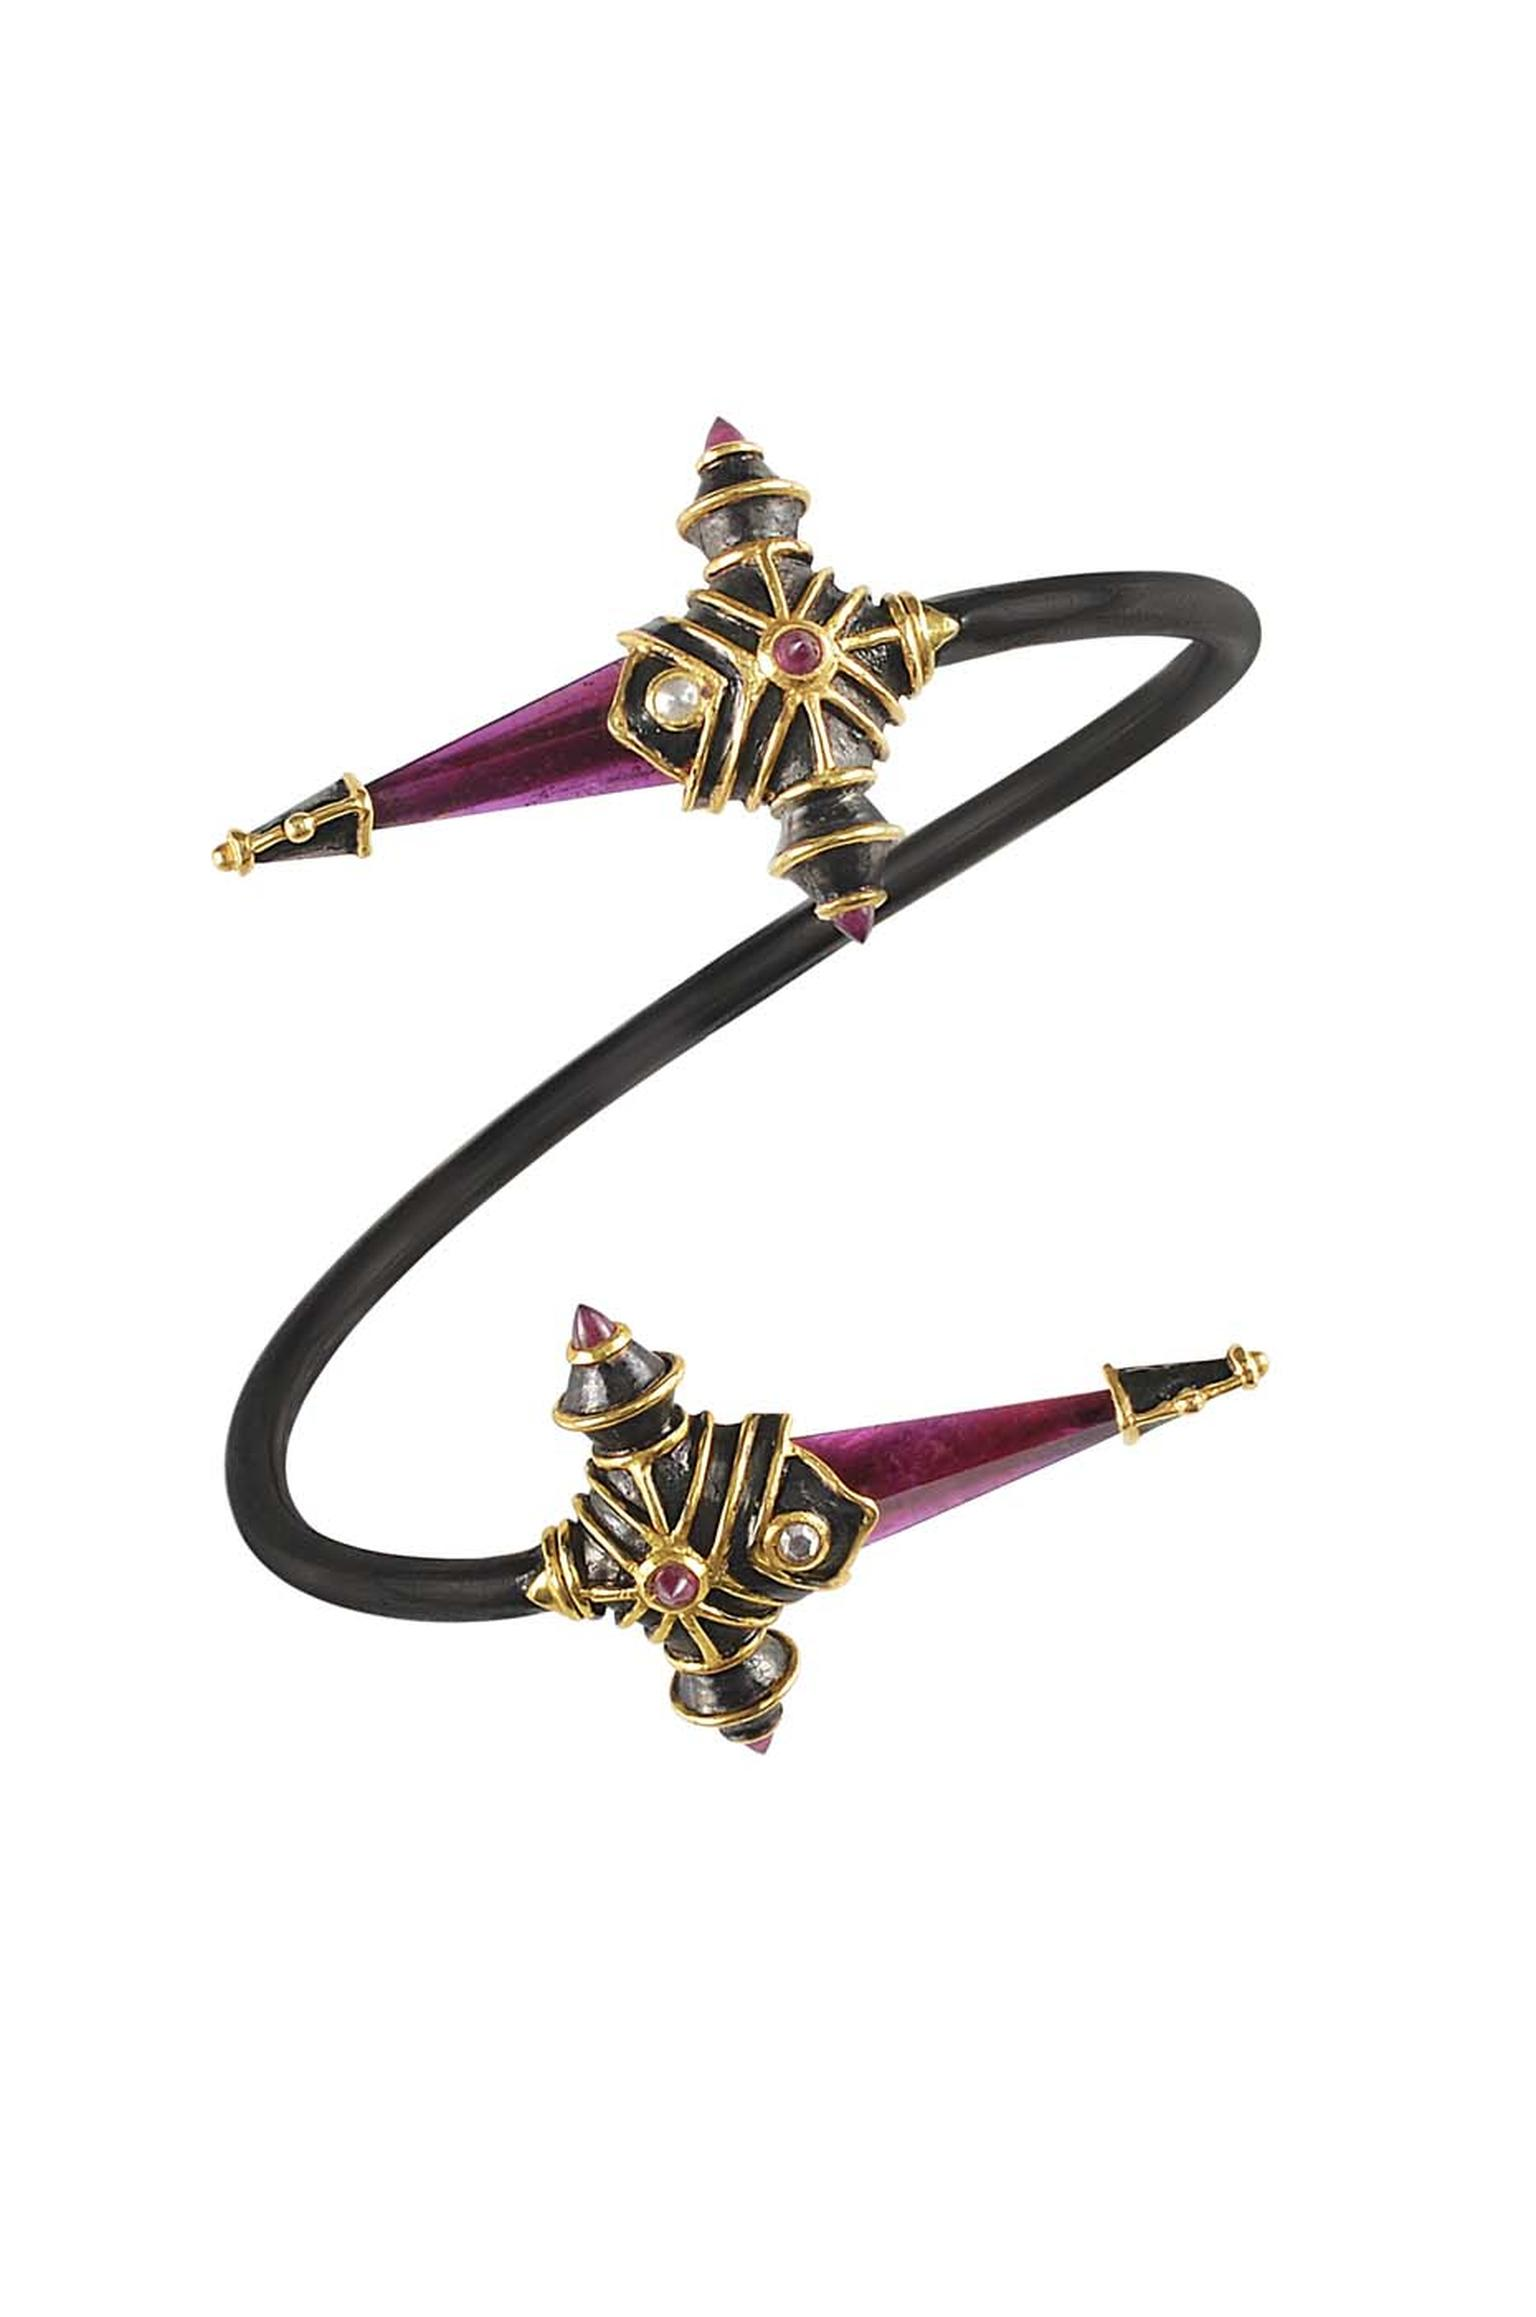 Amrapali Dark Maharaja Sword Bypass bangle in silver and gold with rubies and diamonds.